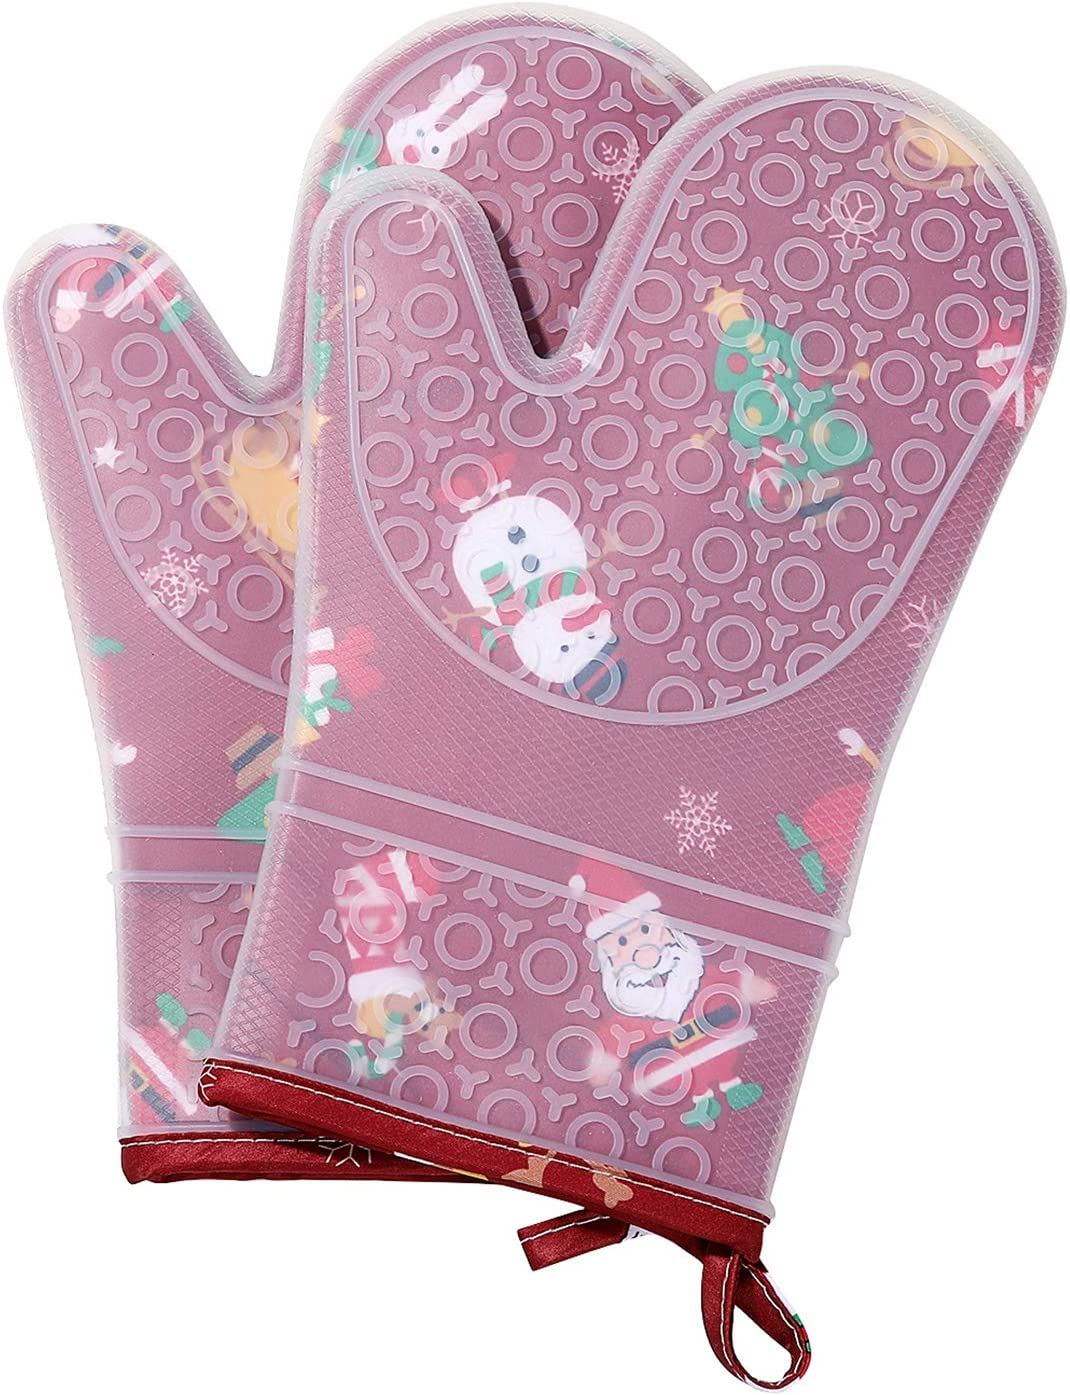 misaya Christmas Silicone Oven Mitts Non-Slip Heat Resistant Kitchen Pot Holders with Grill Basting Brush, Red Christmas